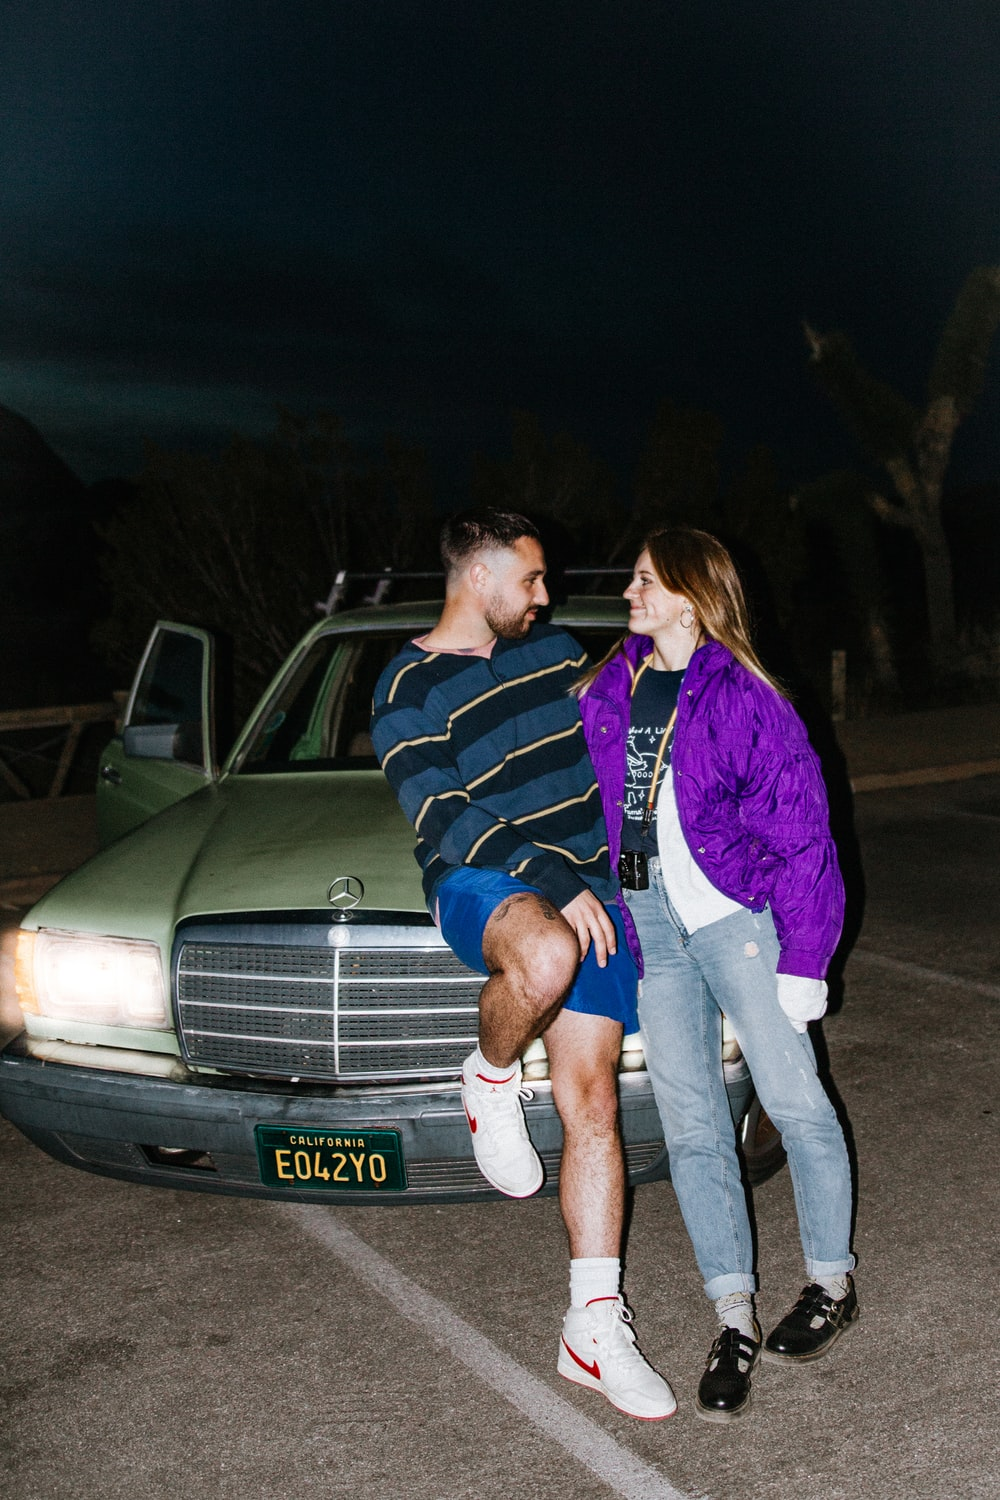 man and woman standing beside white car during night time